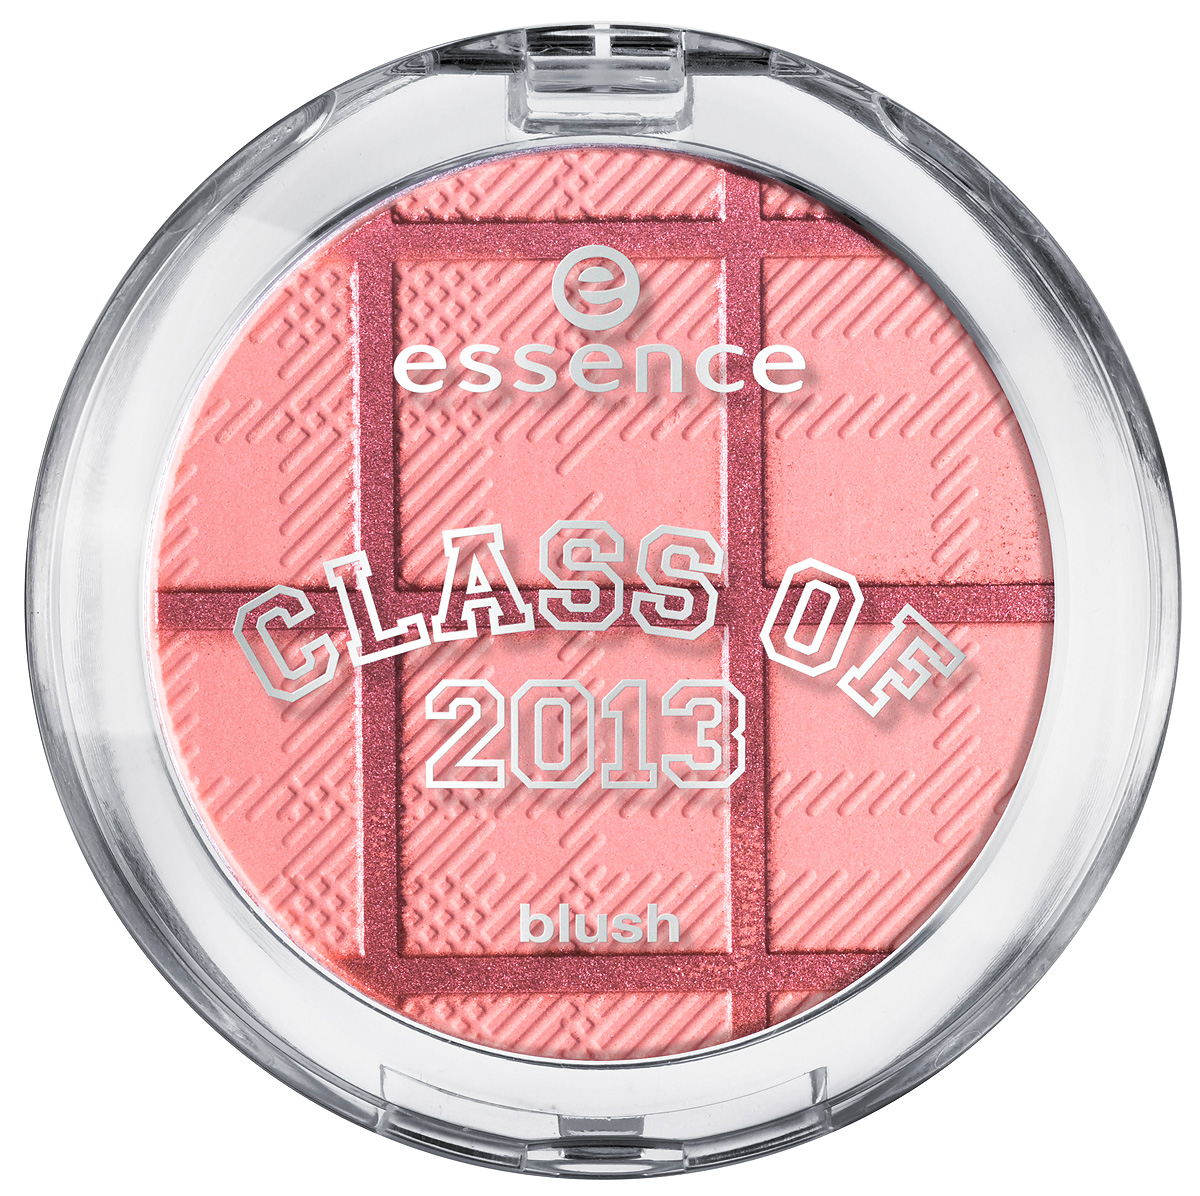 "Trend Edition essence ""class of 2013"" im Oktober 2012 im Handel: Blush"